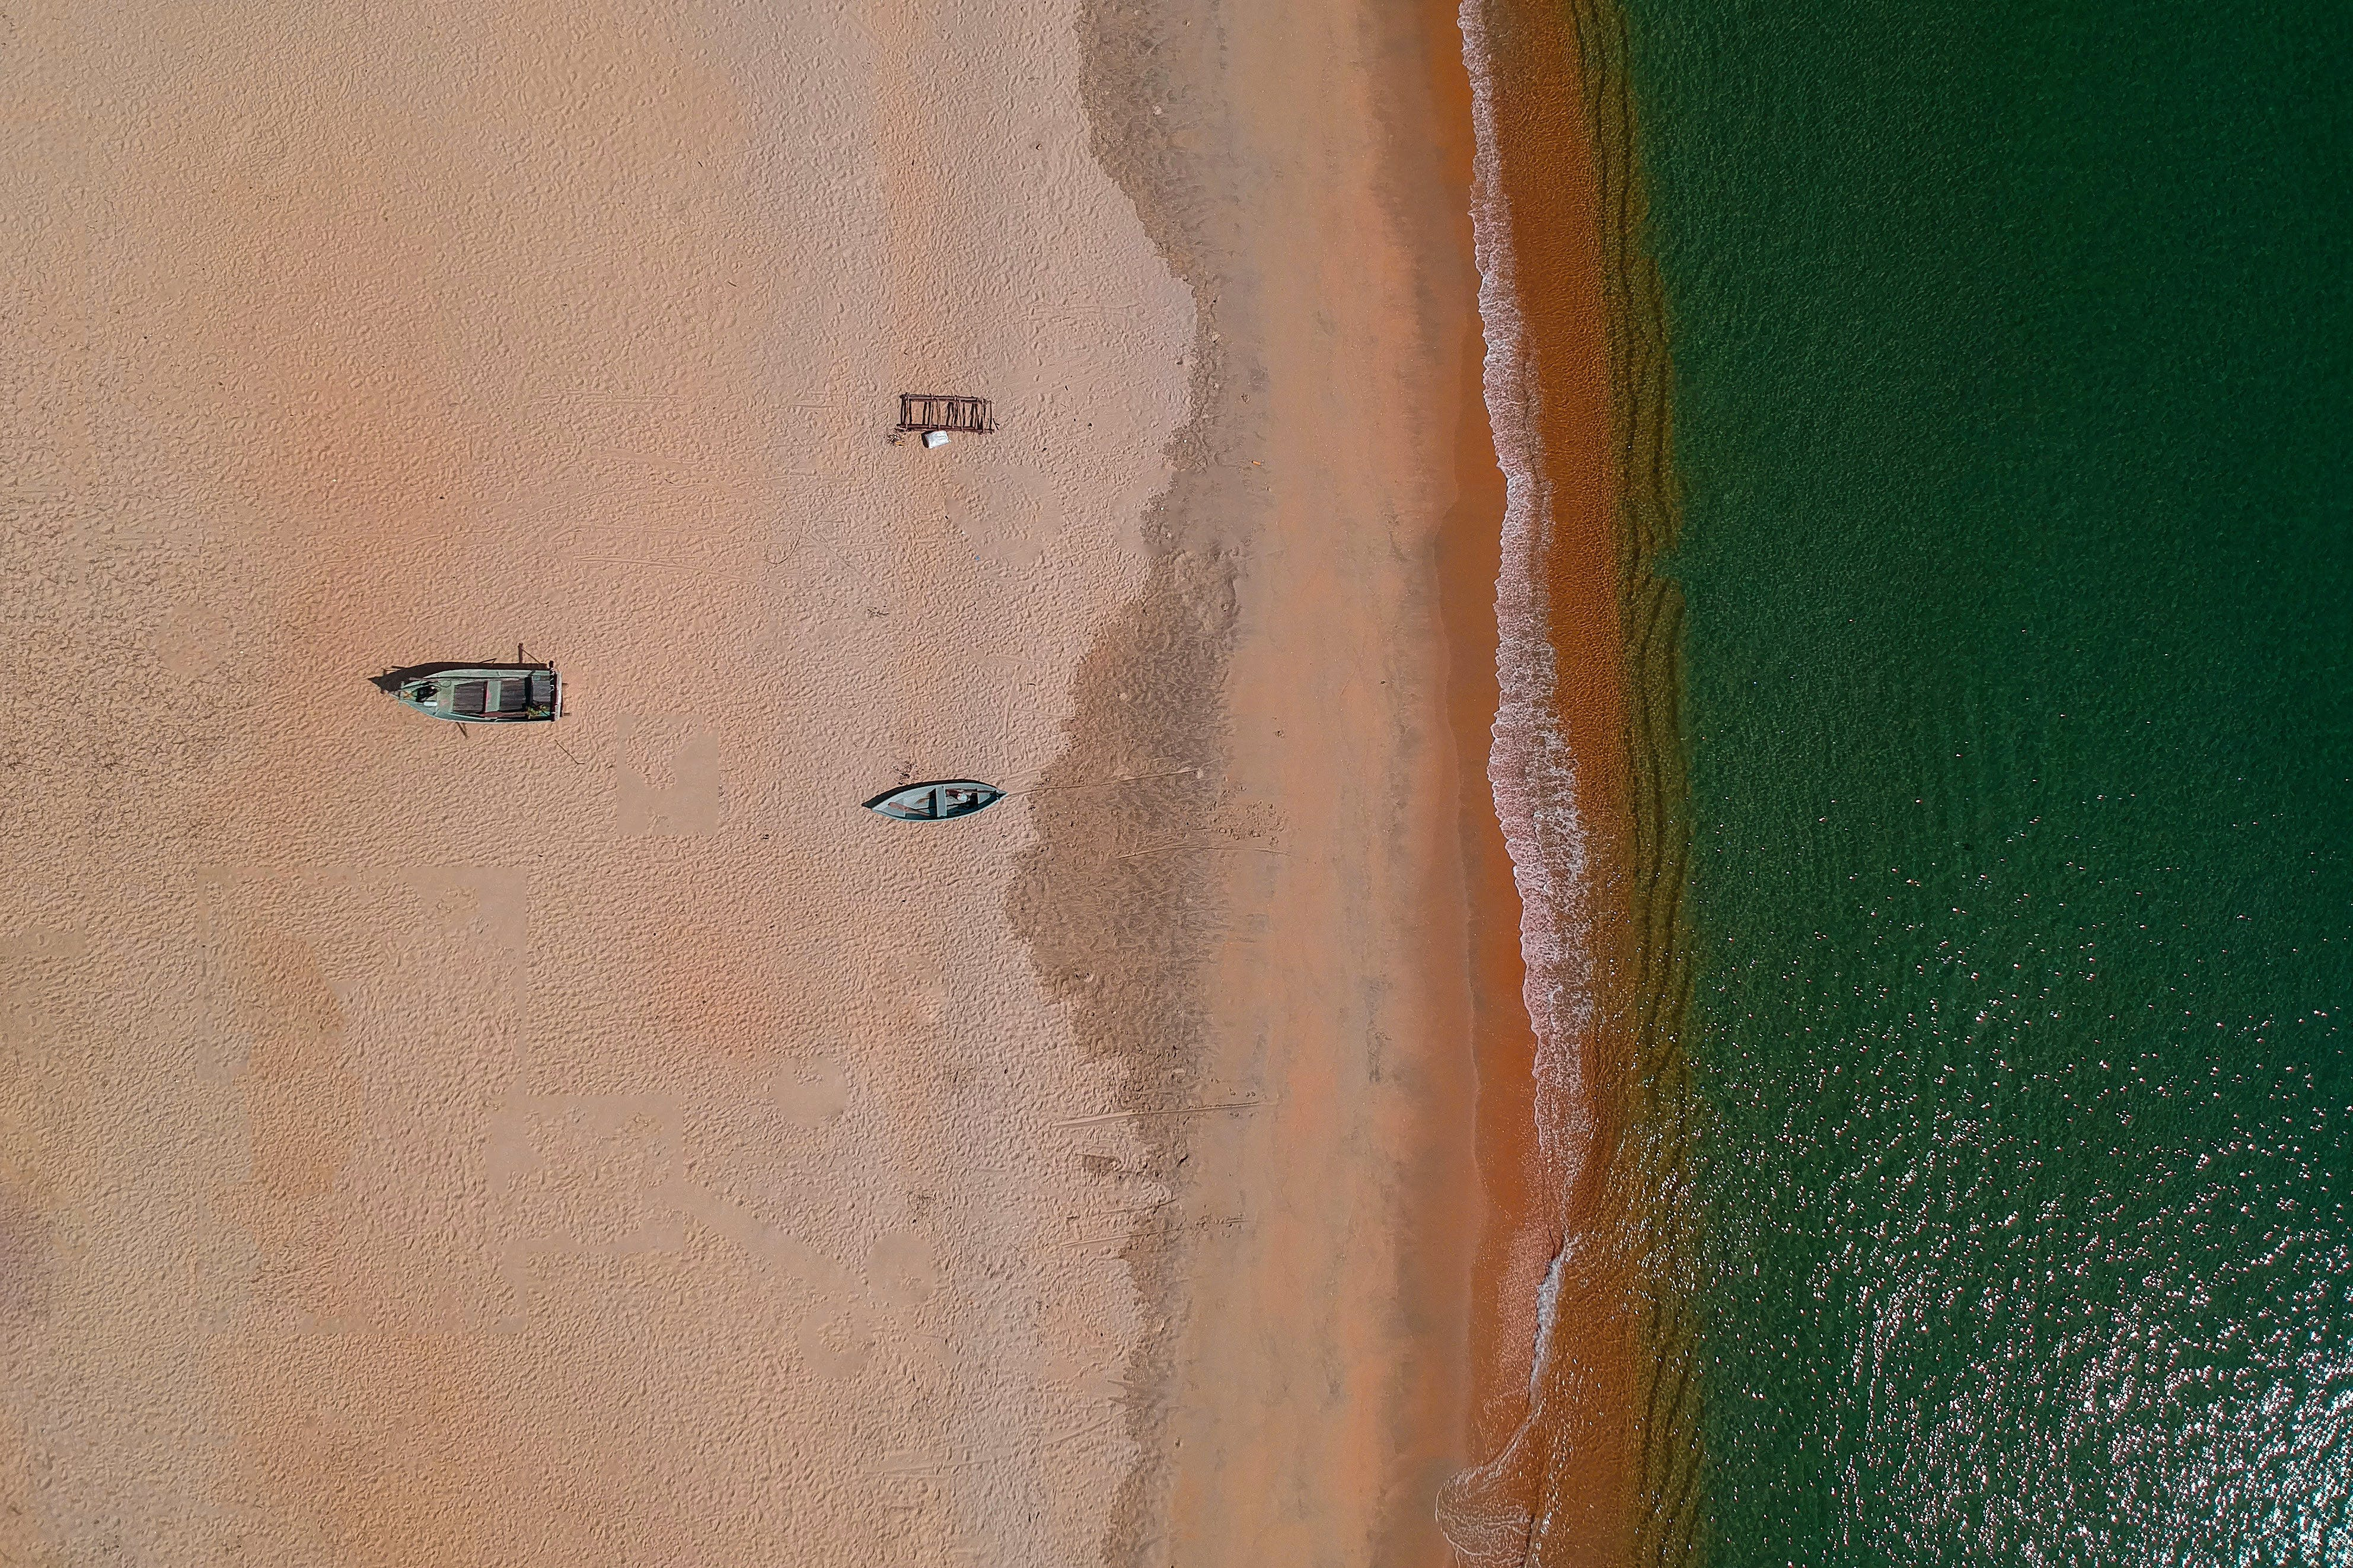 Aerial Photography of Two Gray Wooden Boats on Sand Front of Sea